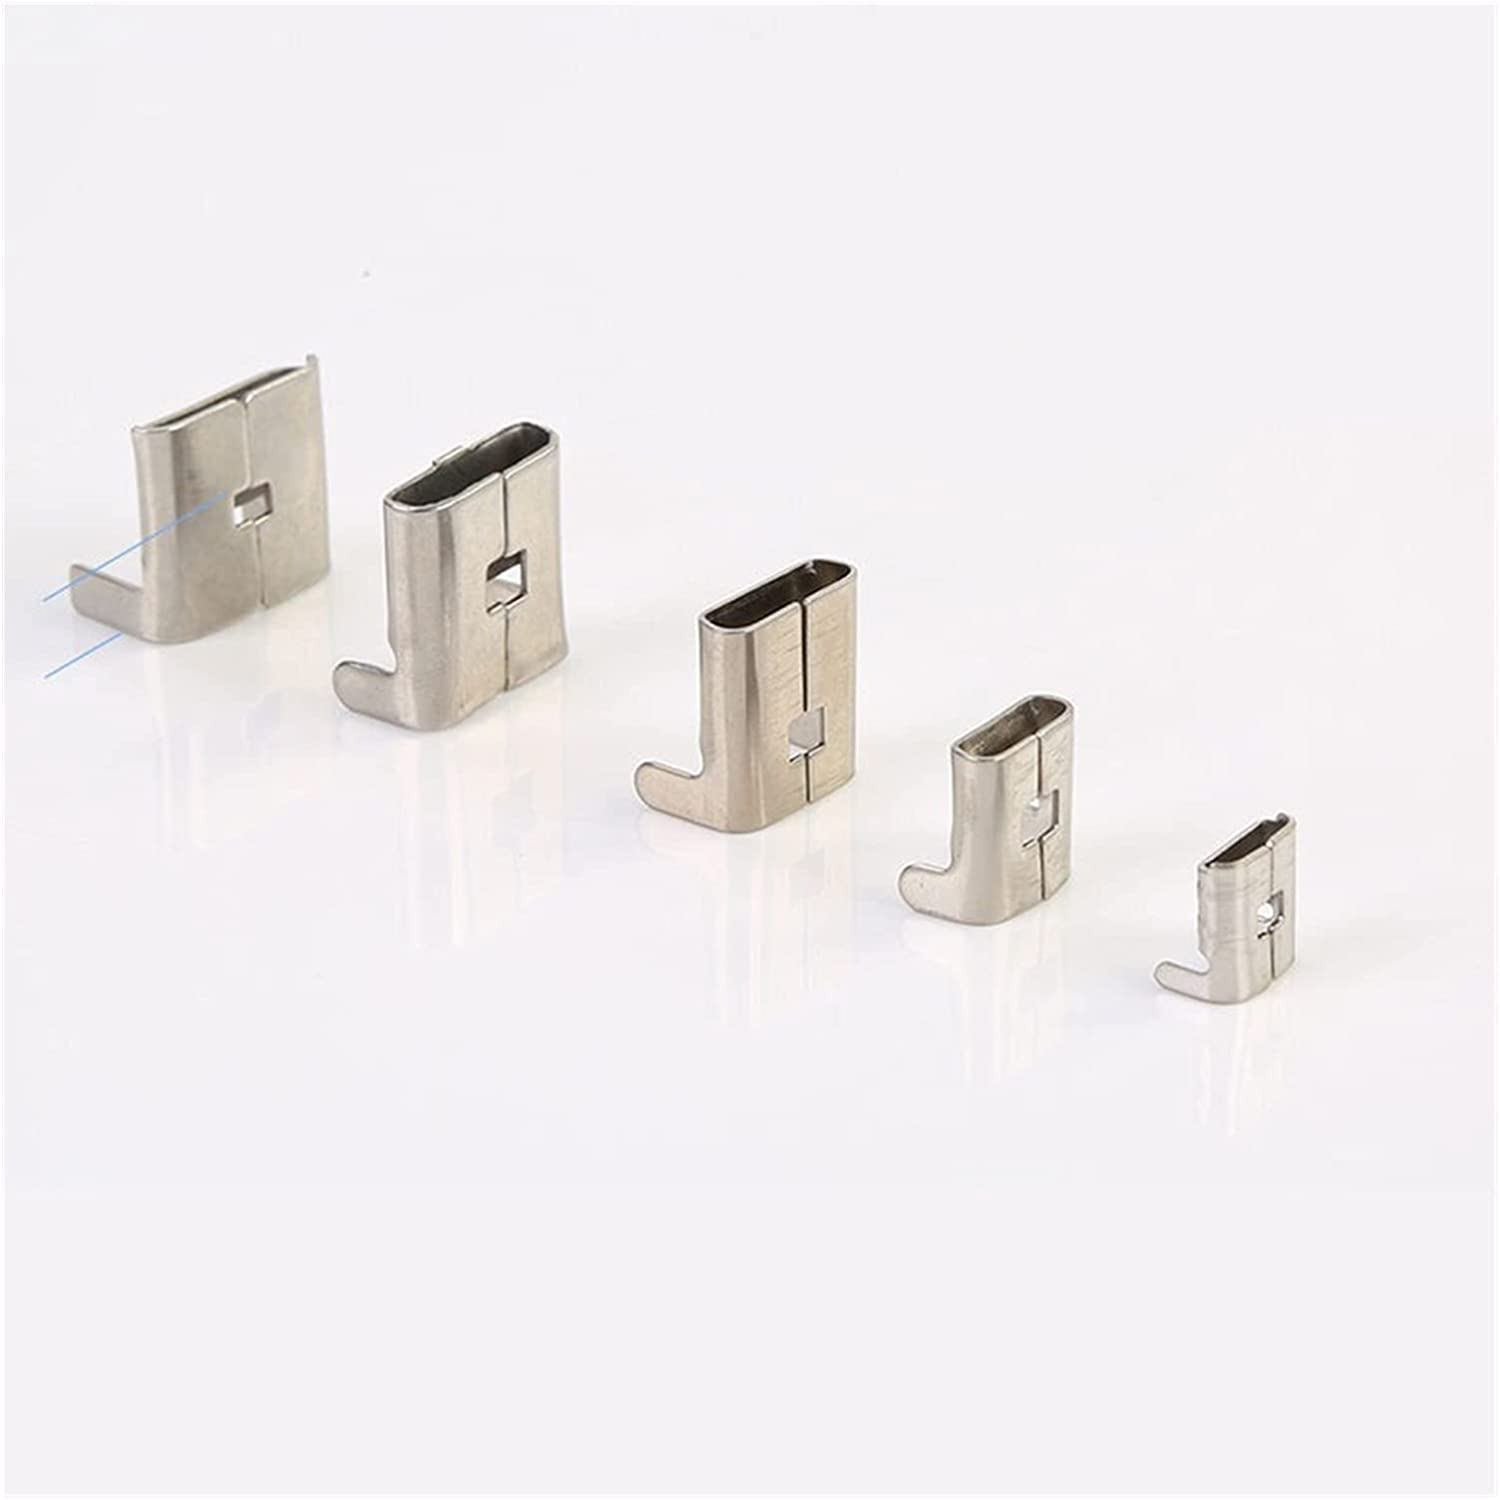 Packaging Strapping 304 Stainless Stee All items in the store Steel L-shaped Reservation